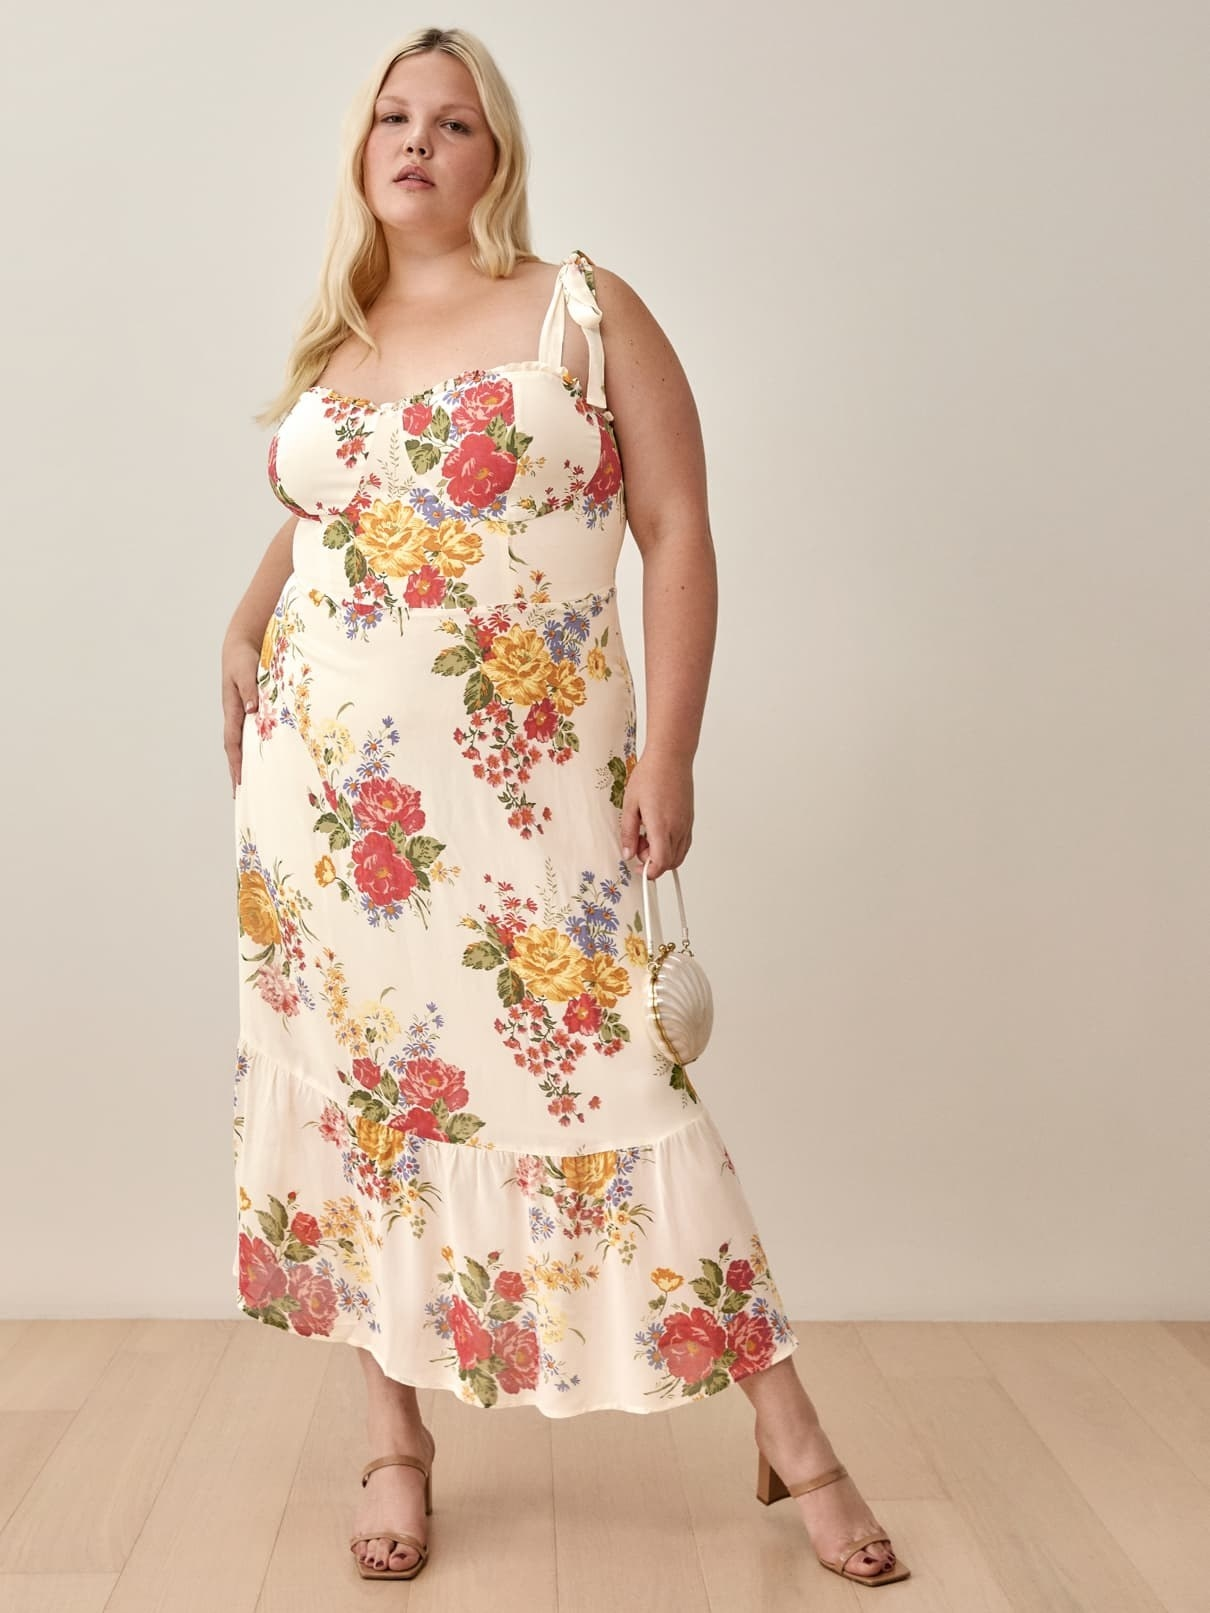 model wearing the cream colored dress with bouquet prints